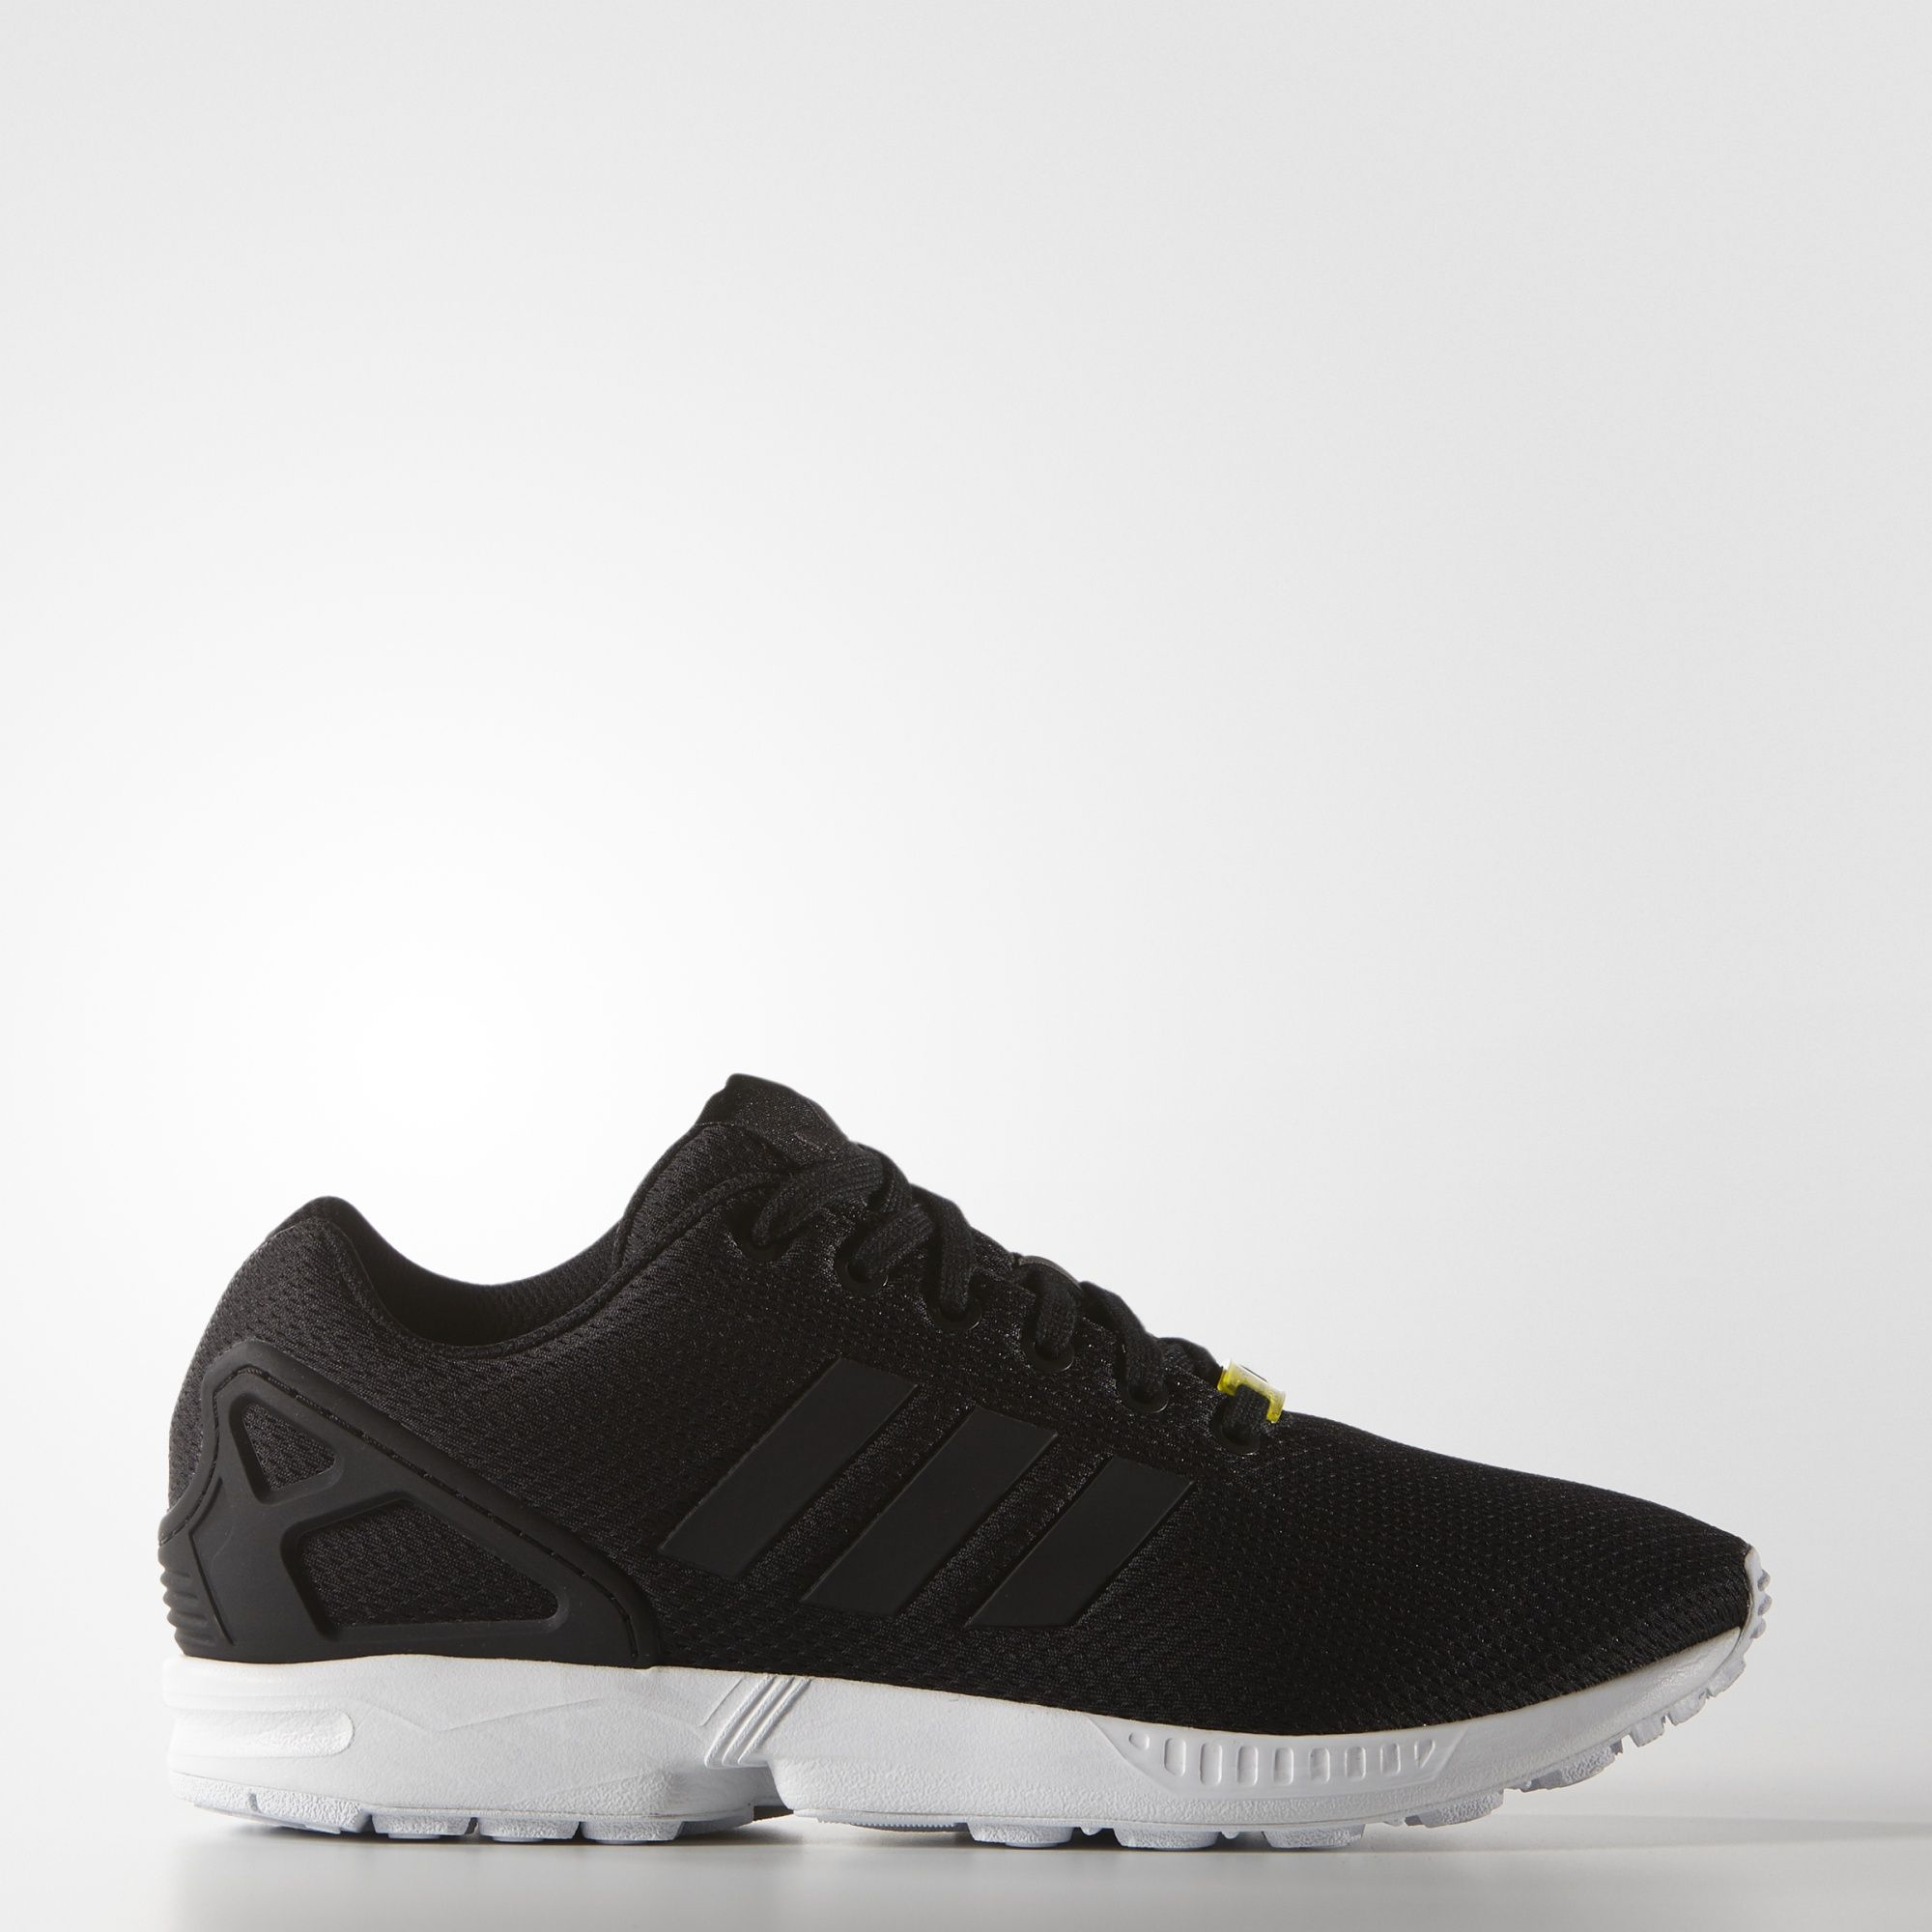 adidas mens zx flux black trainers nz